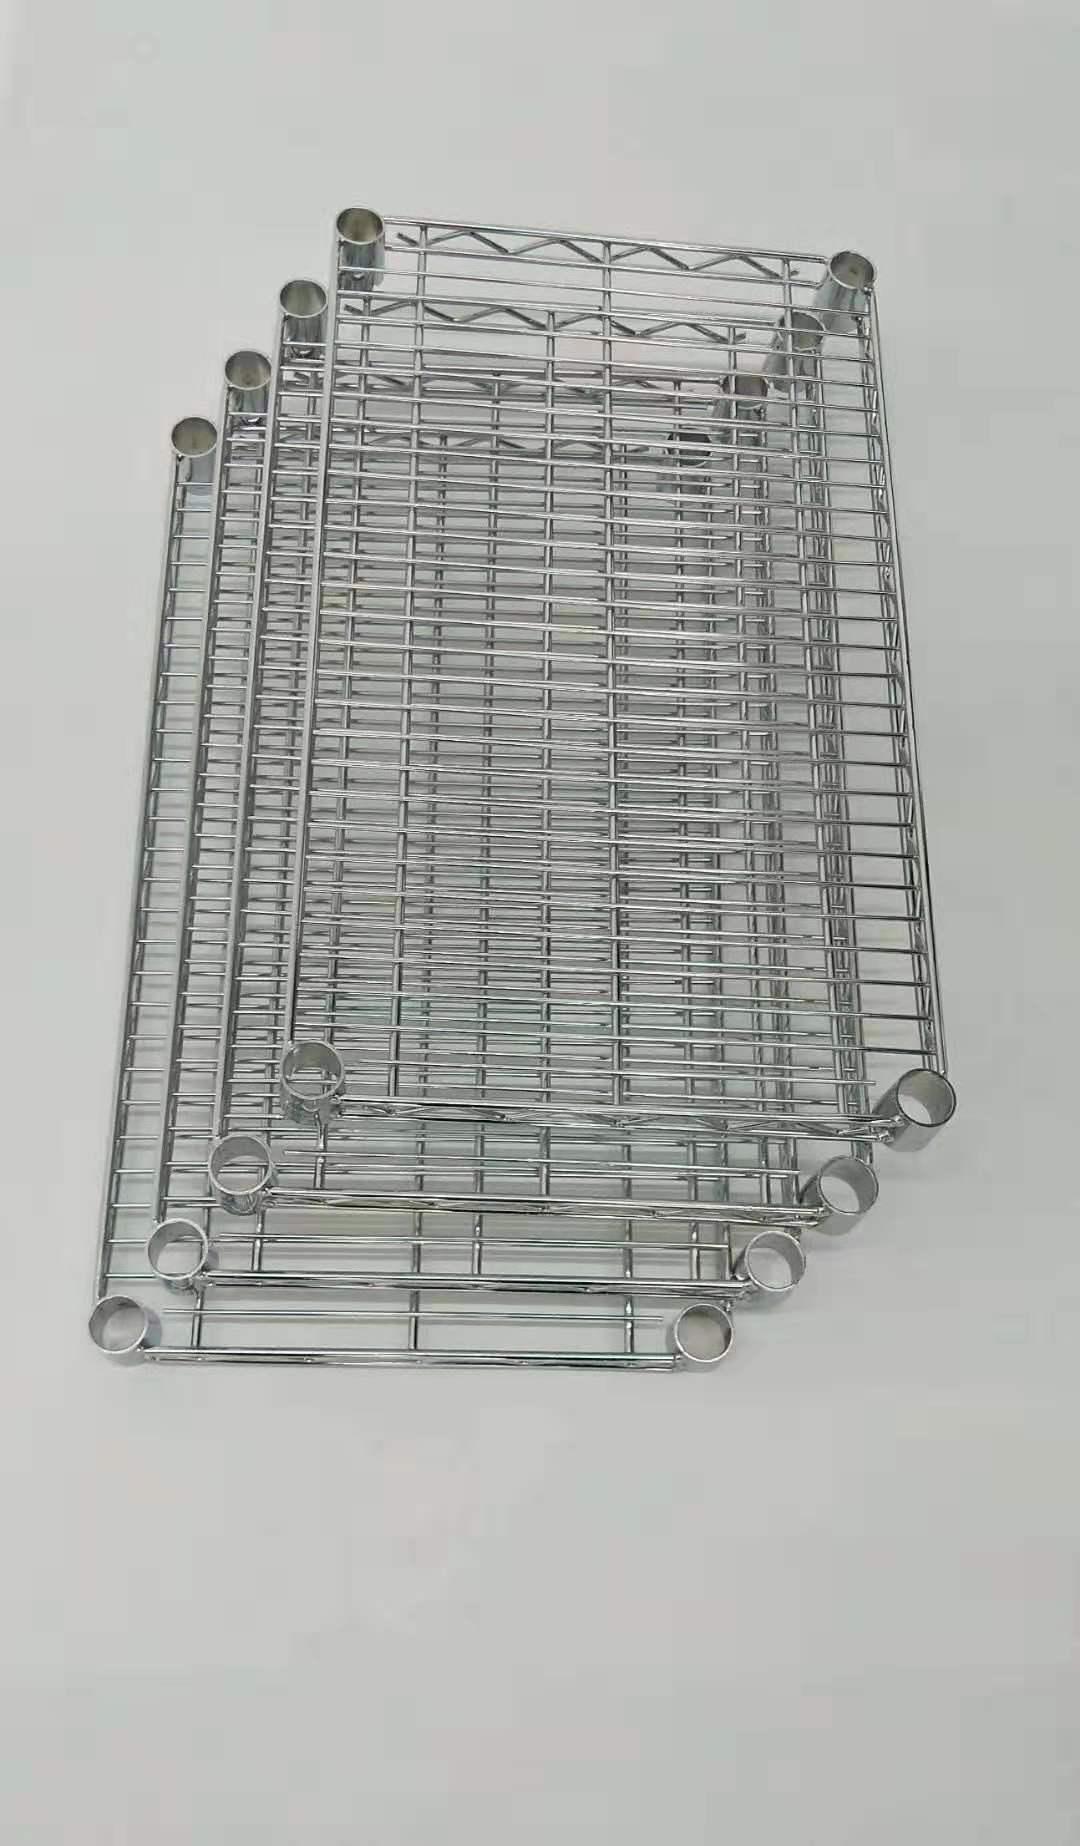 4-Tier Adjustable Steel Shelves Heavy Duty Shelf Wire Shelving